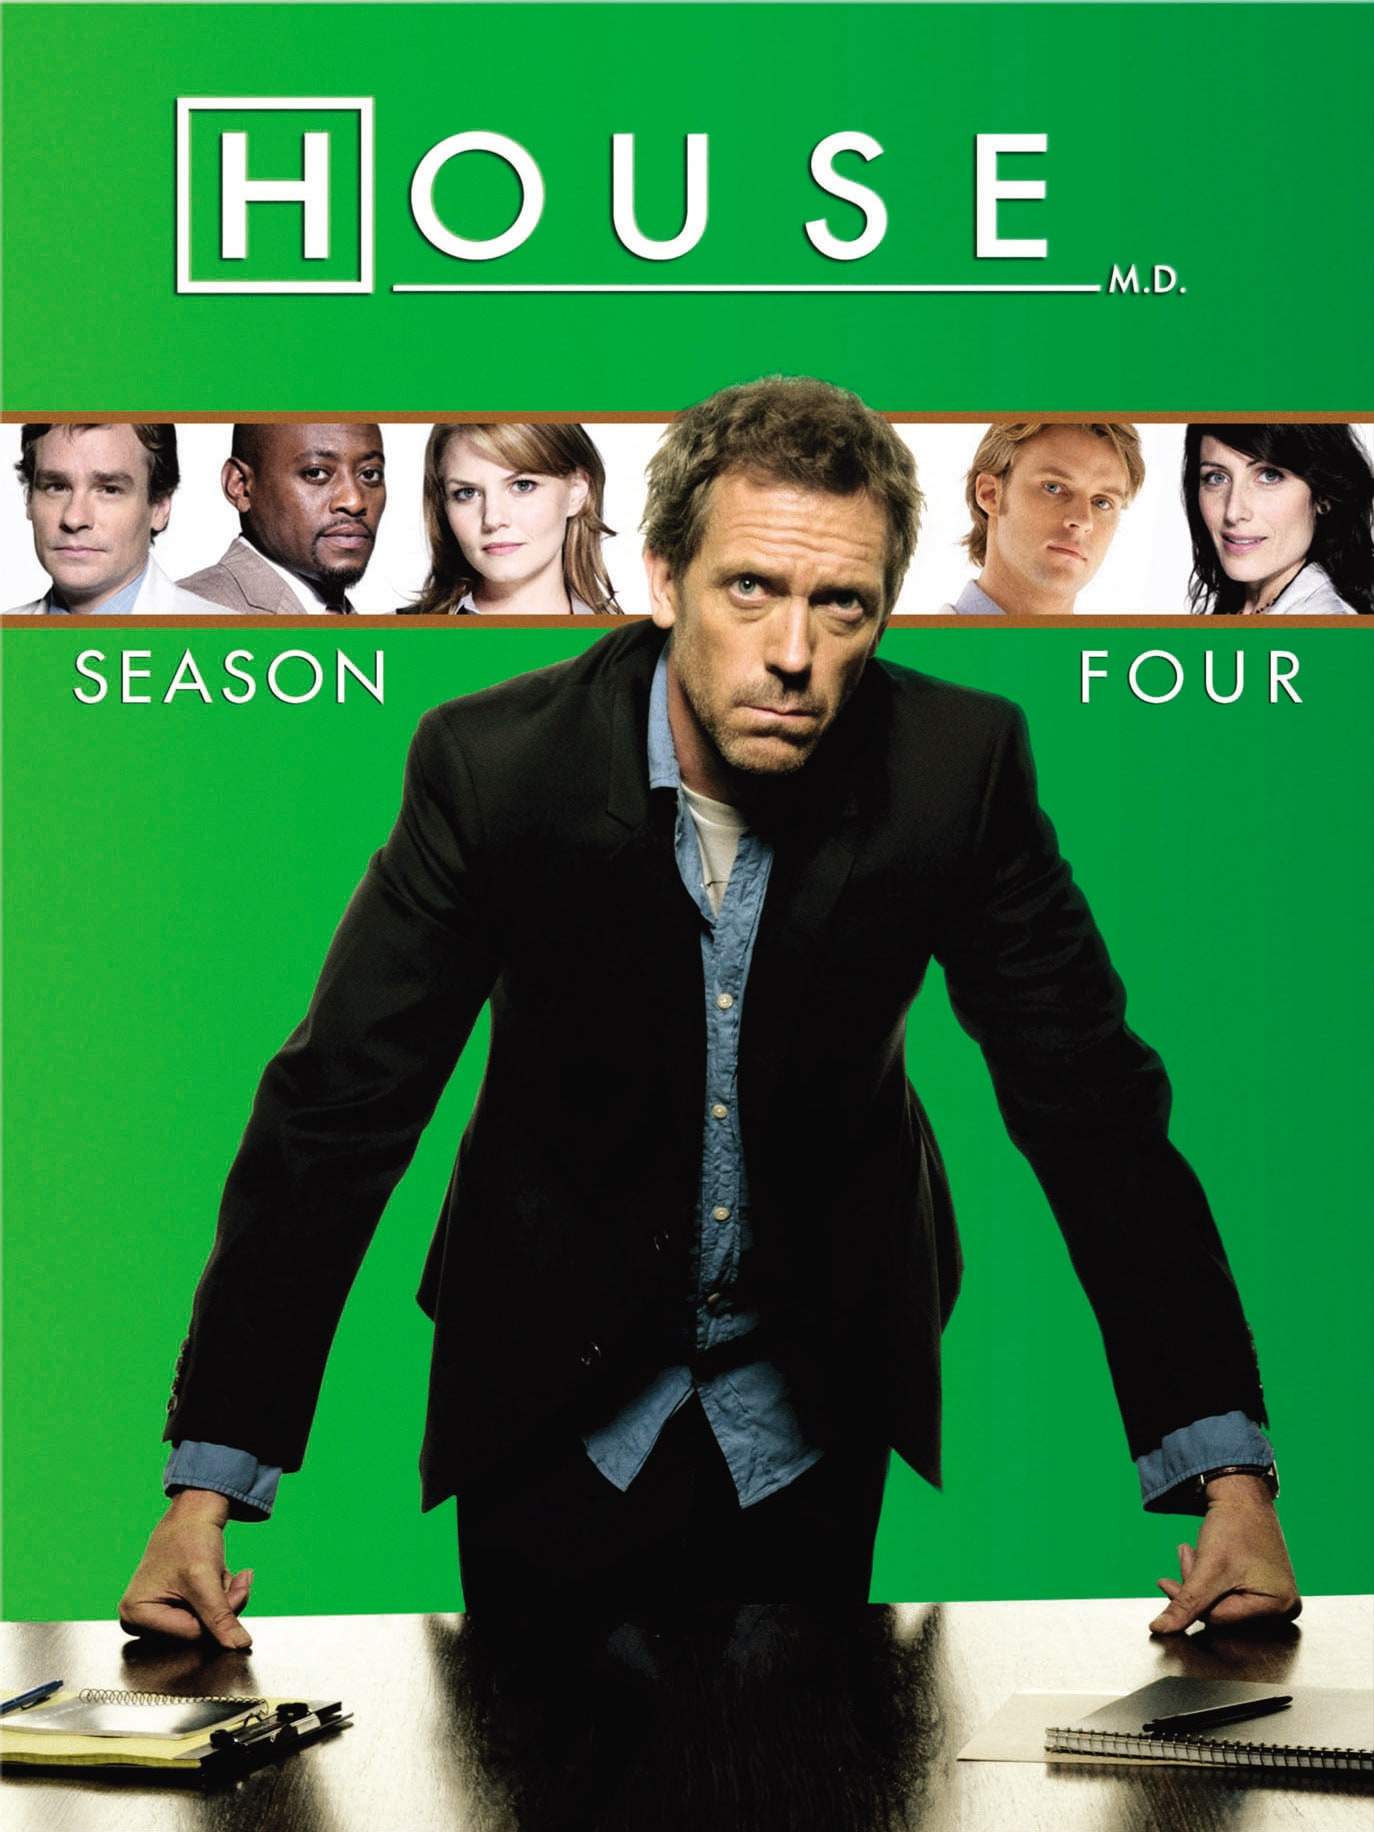 House: Season 4 (2008) [DVD]